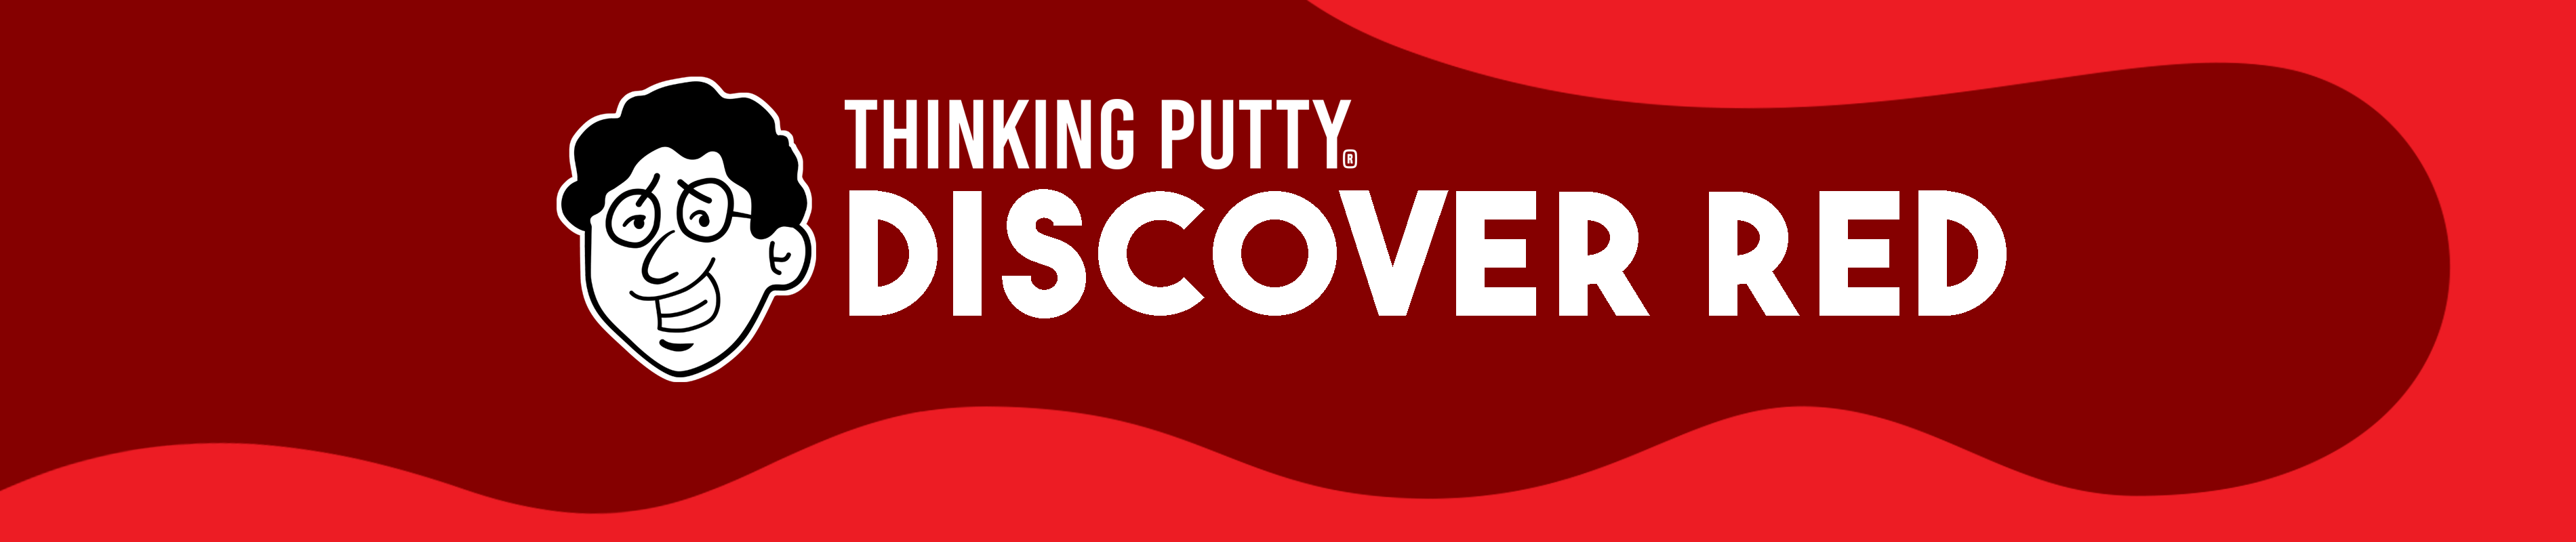 Shop Red Thinking Putty